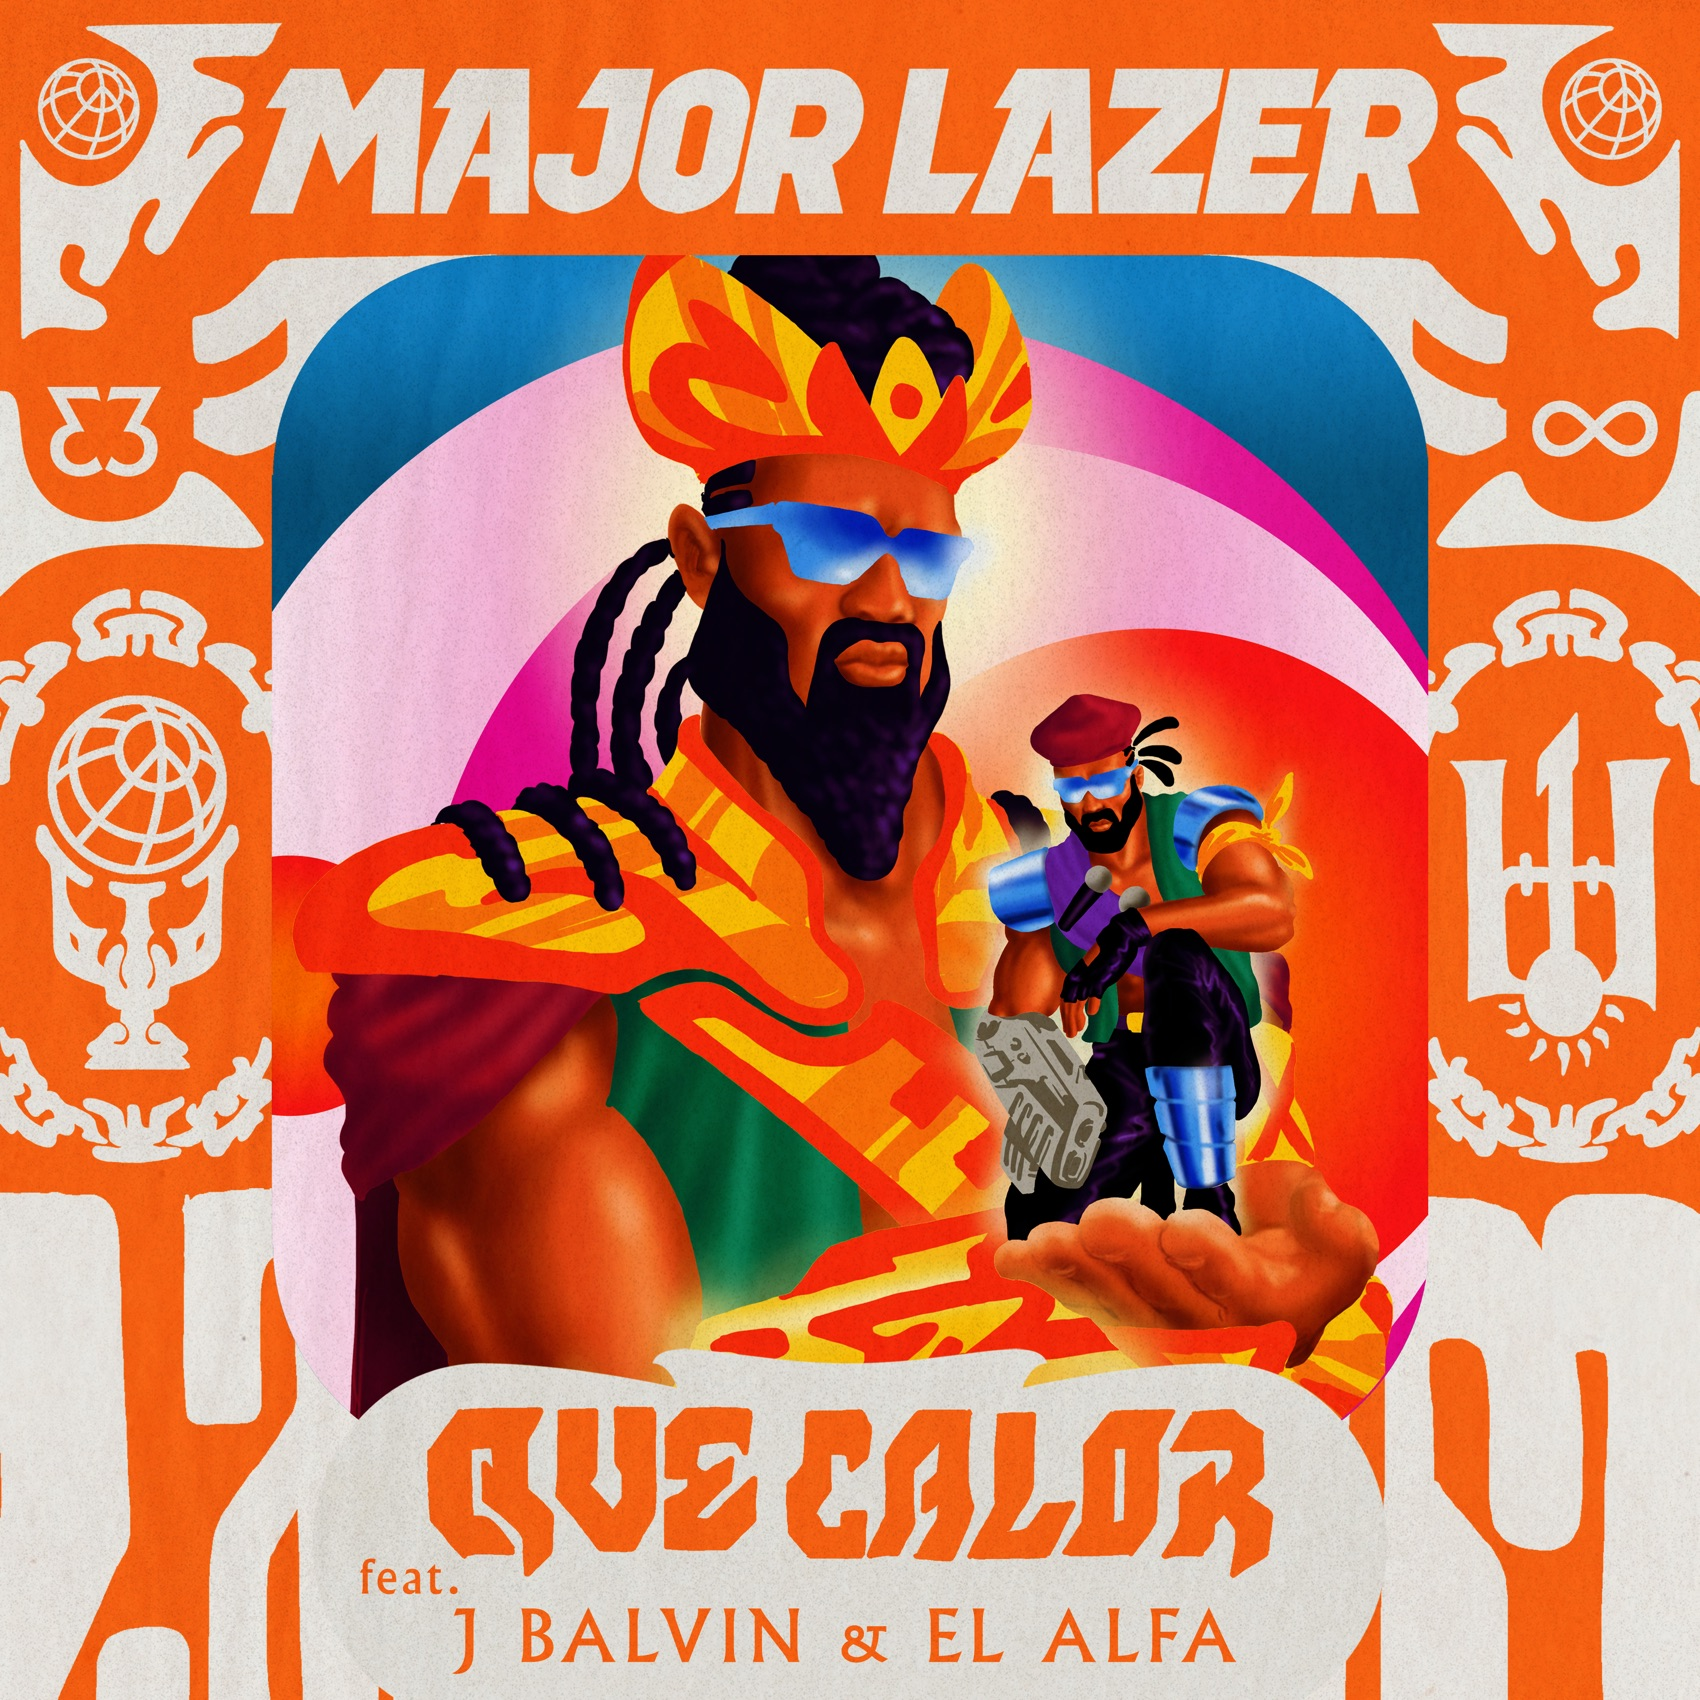 Major Lazer - Que Calor (feat. J Balvin & El Alfa)